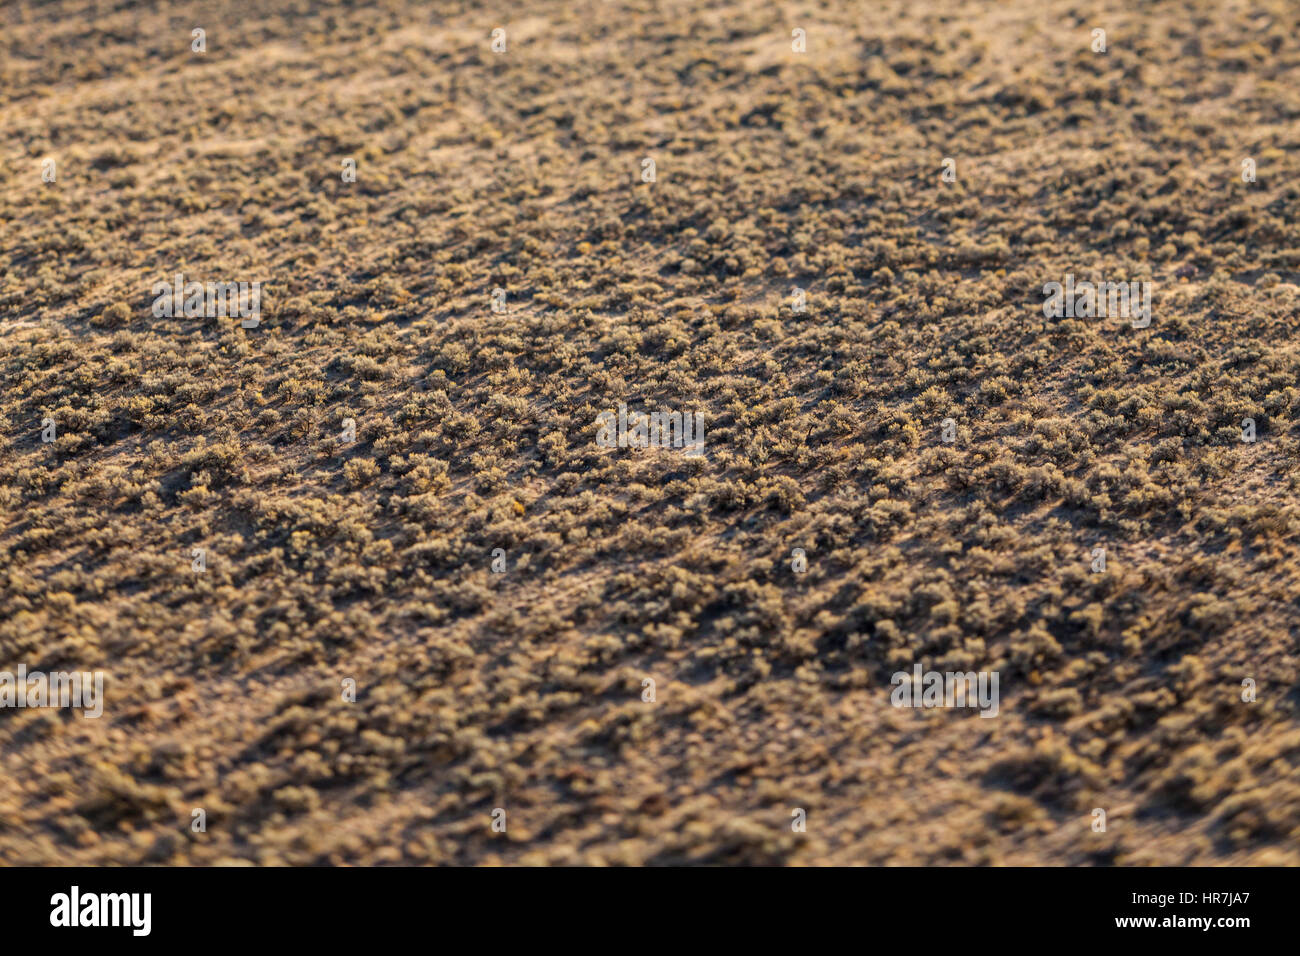 A valley floor covered with sage brush near sunset, Frenchman's Coulee, near Vantage, Washington, USA. - Stock Image